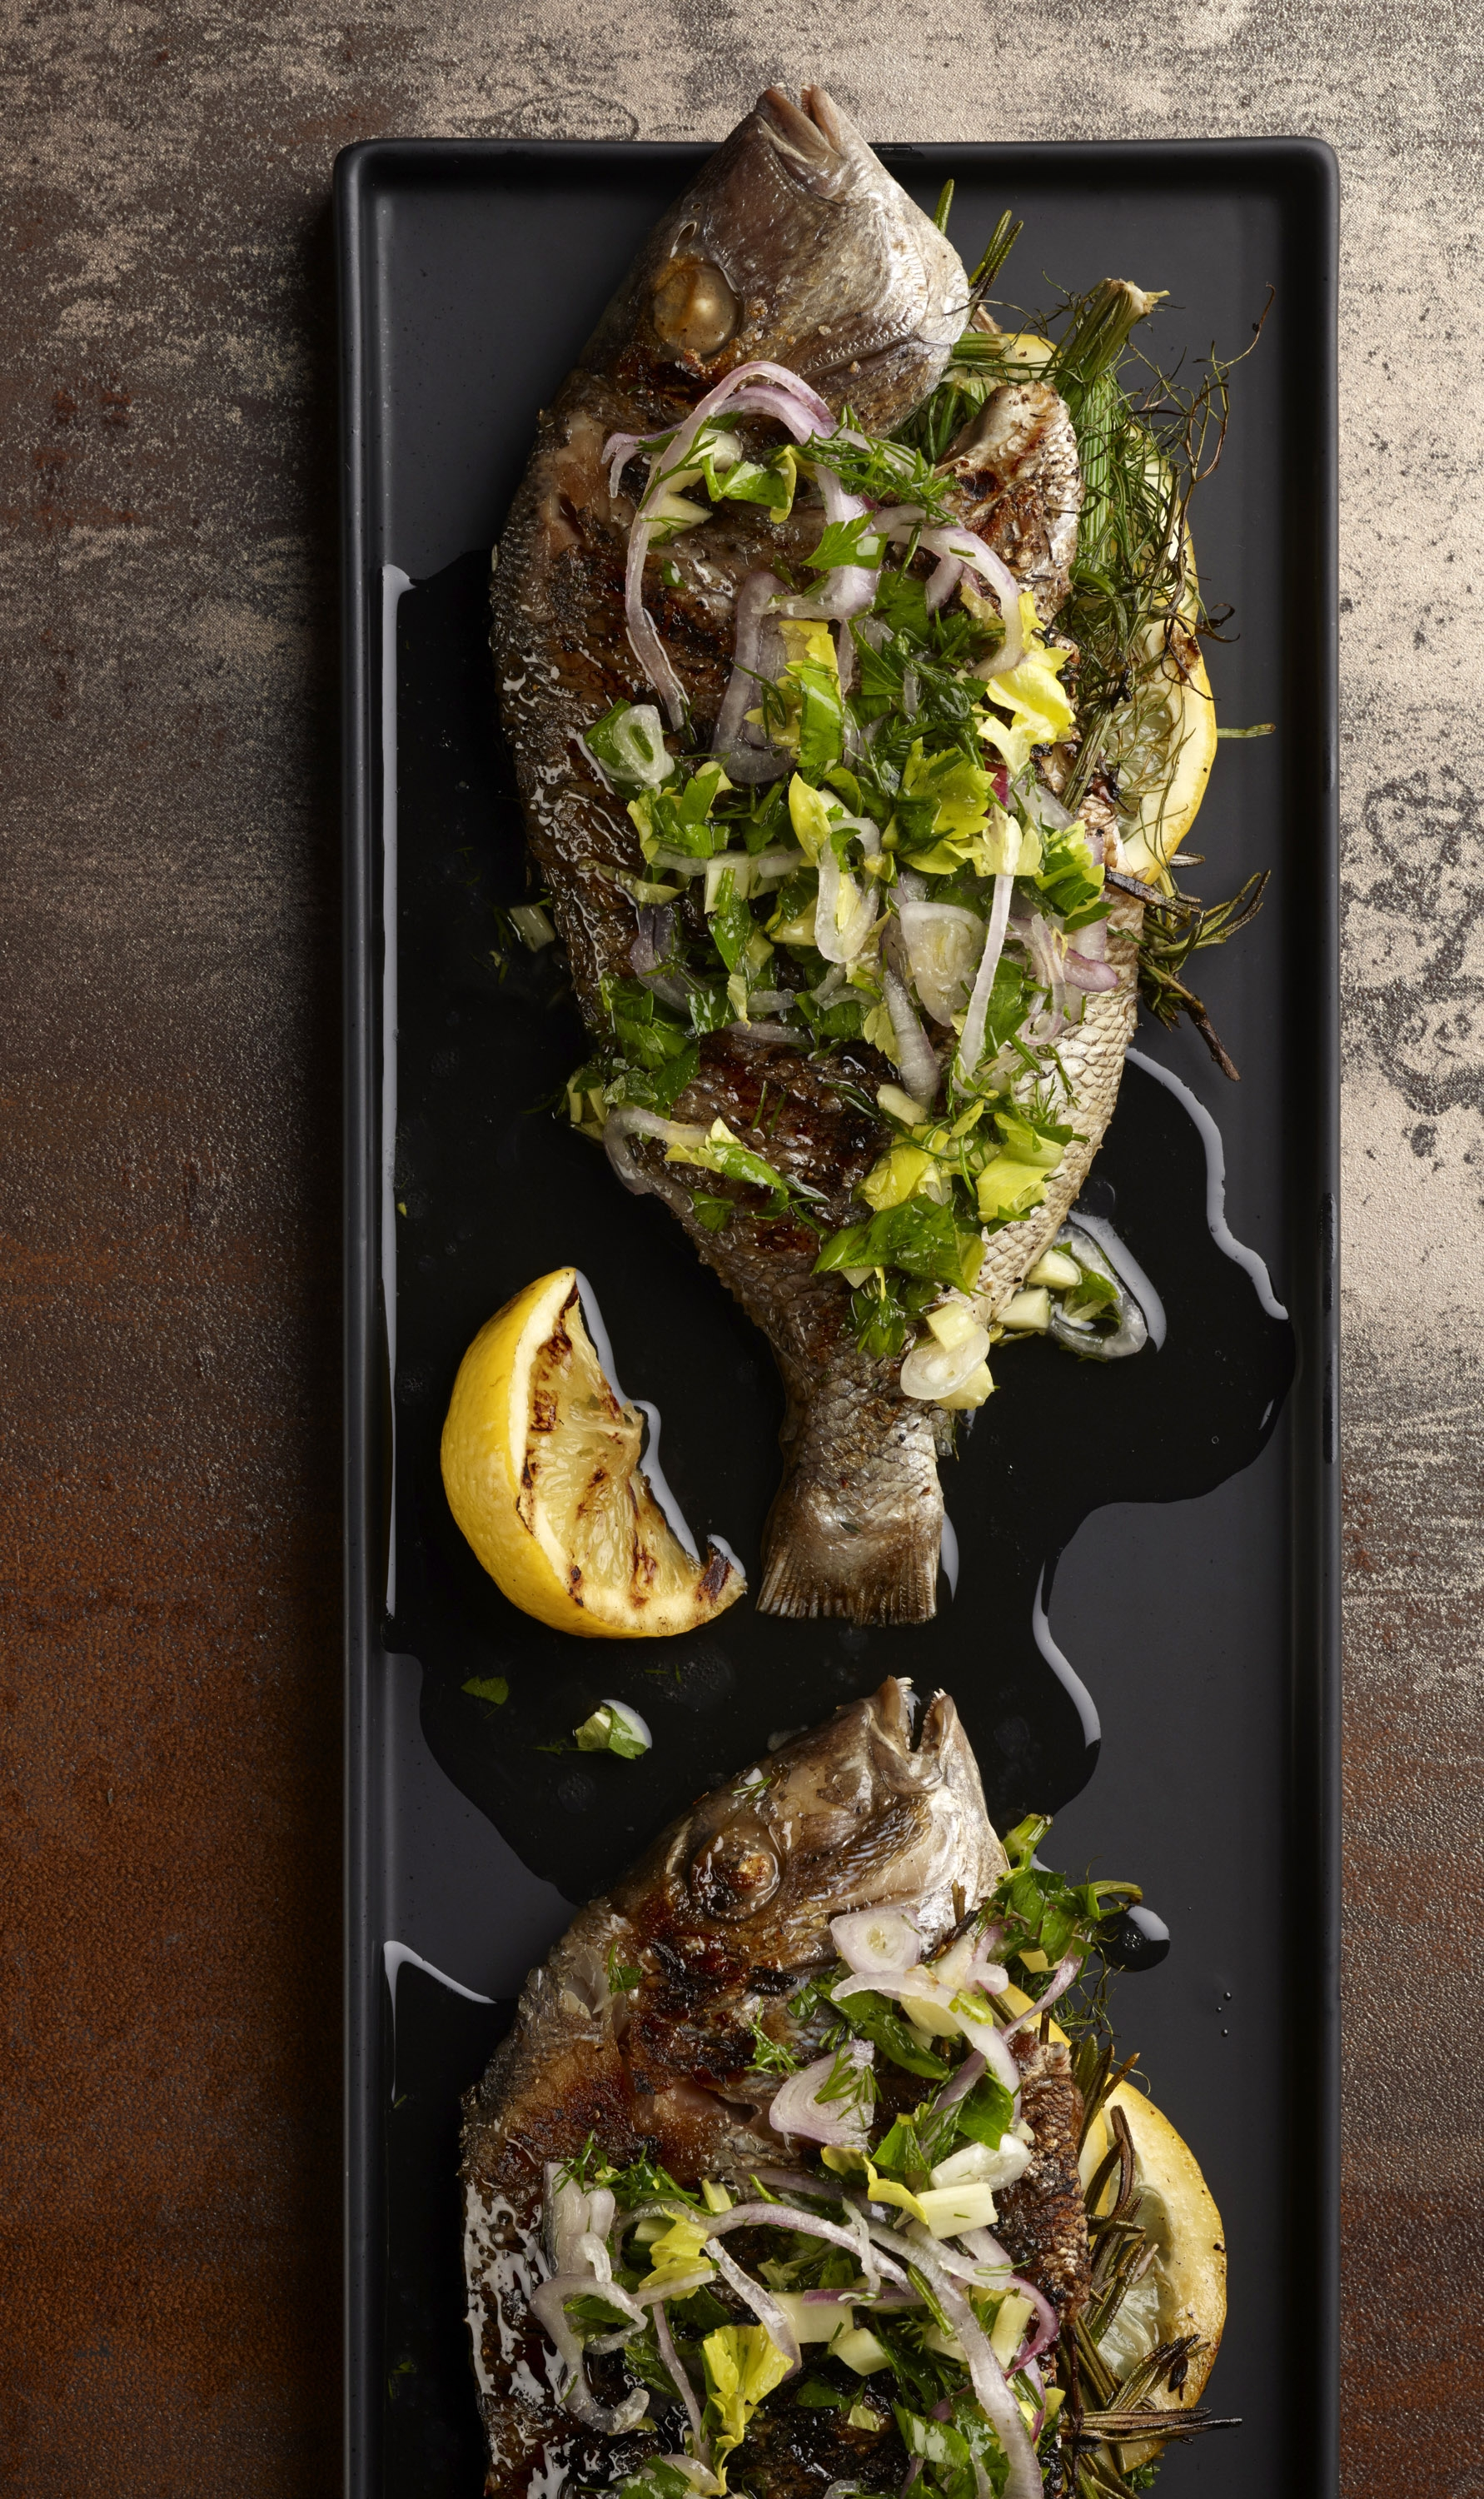 Don't let the filleting intimidate you – whole grilled fish can be enjoyed at home with this lemony Porgy Alla Salmoriglio recipe.